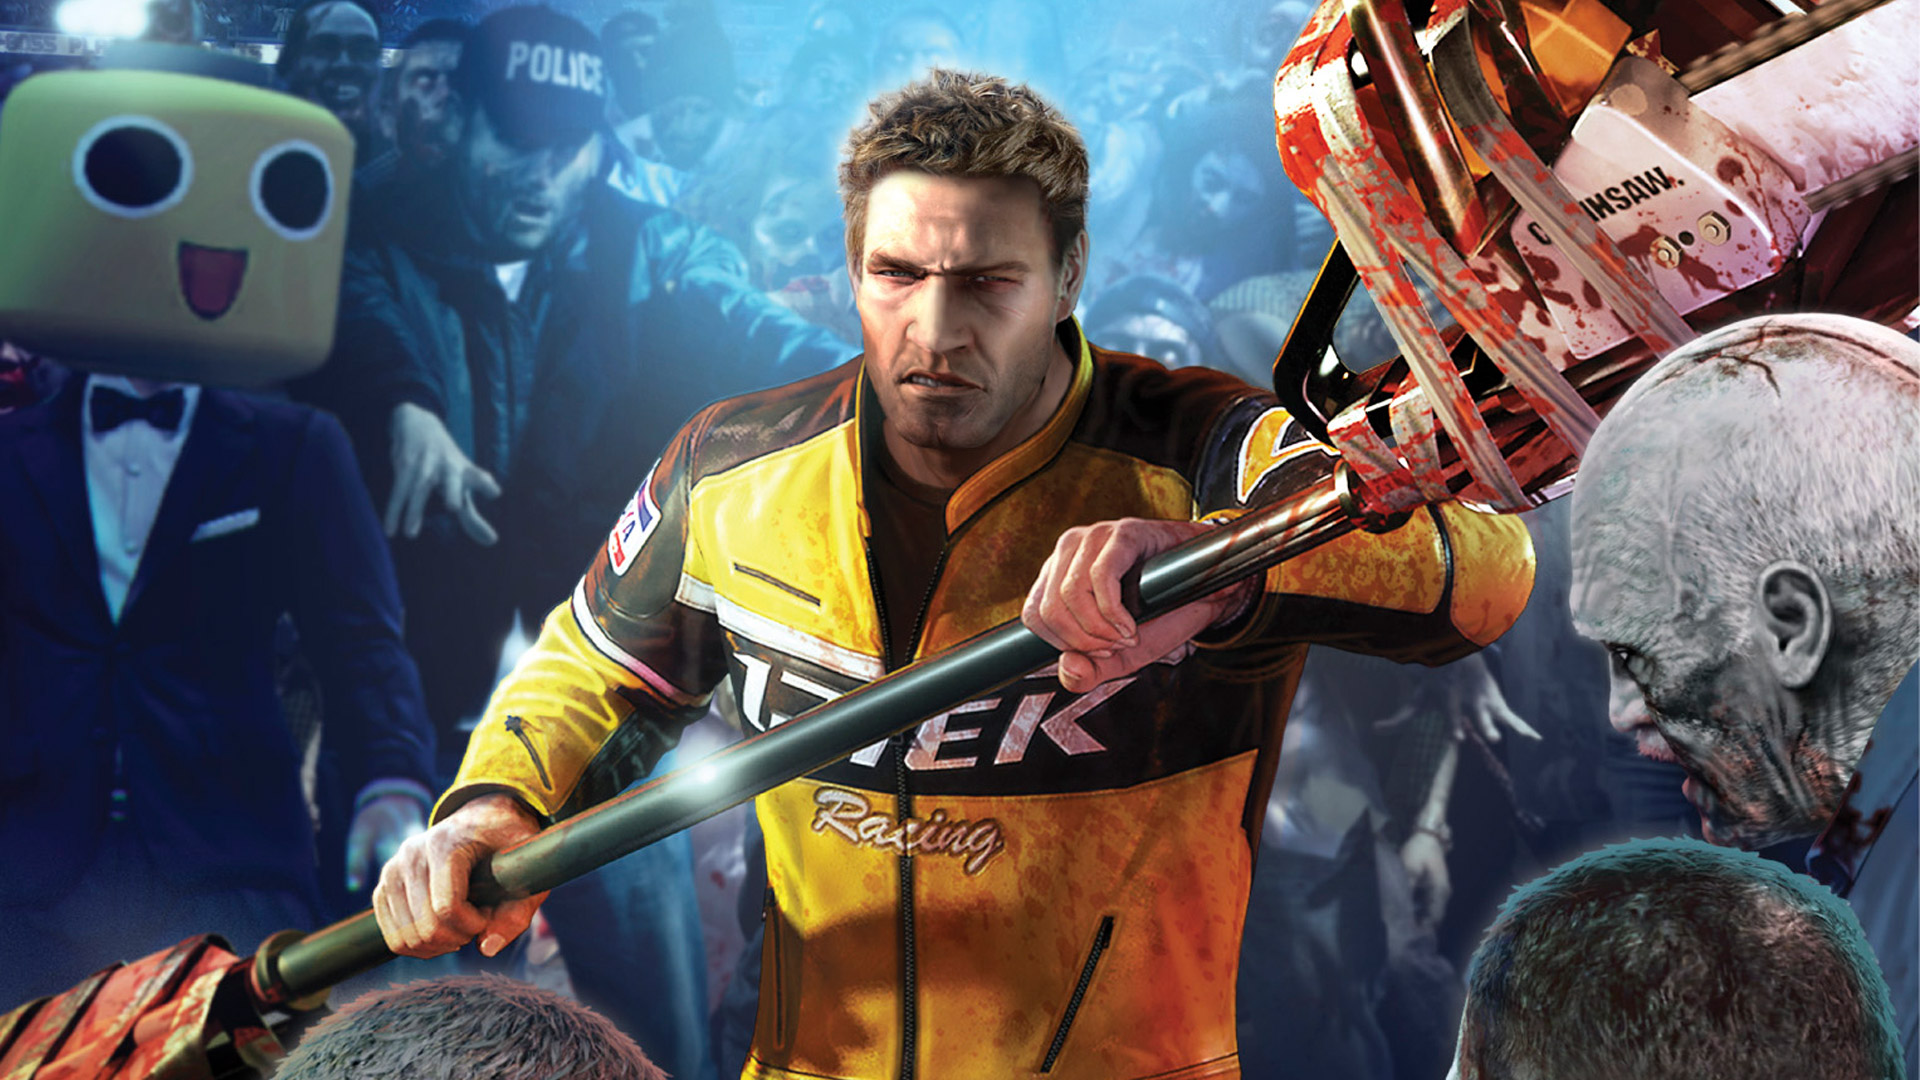 Free Dead Rising 2 Wallpaper in 1920x1080